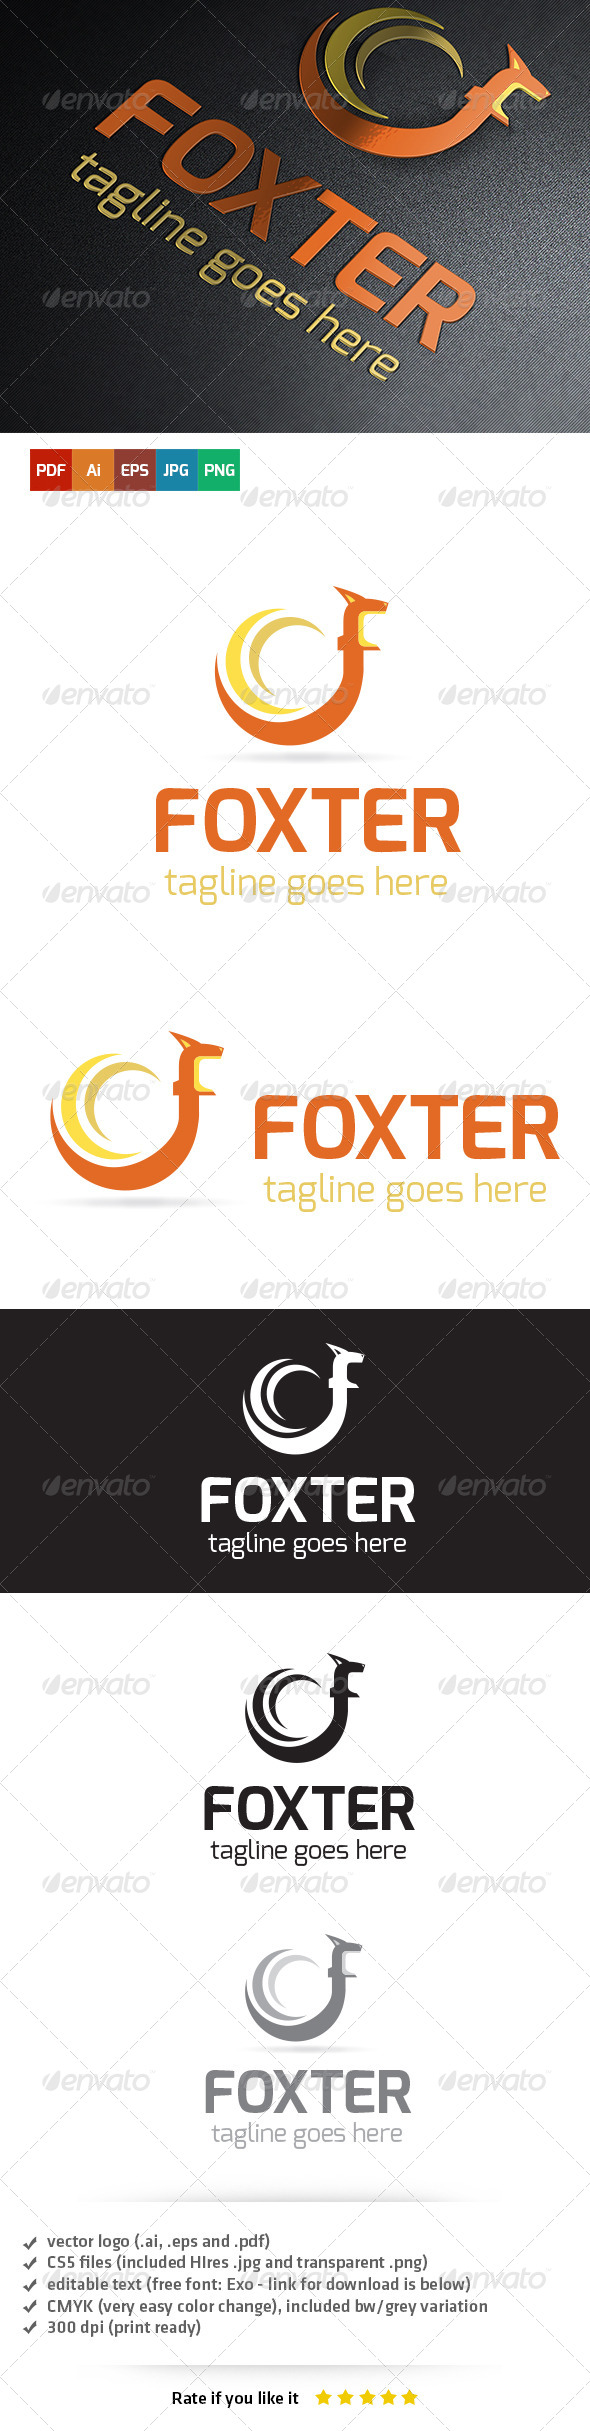 GraphicRiver Foxter Logo Template 6459801